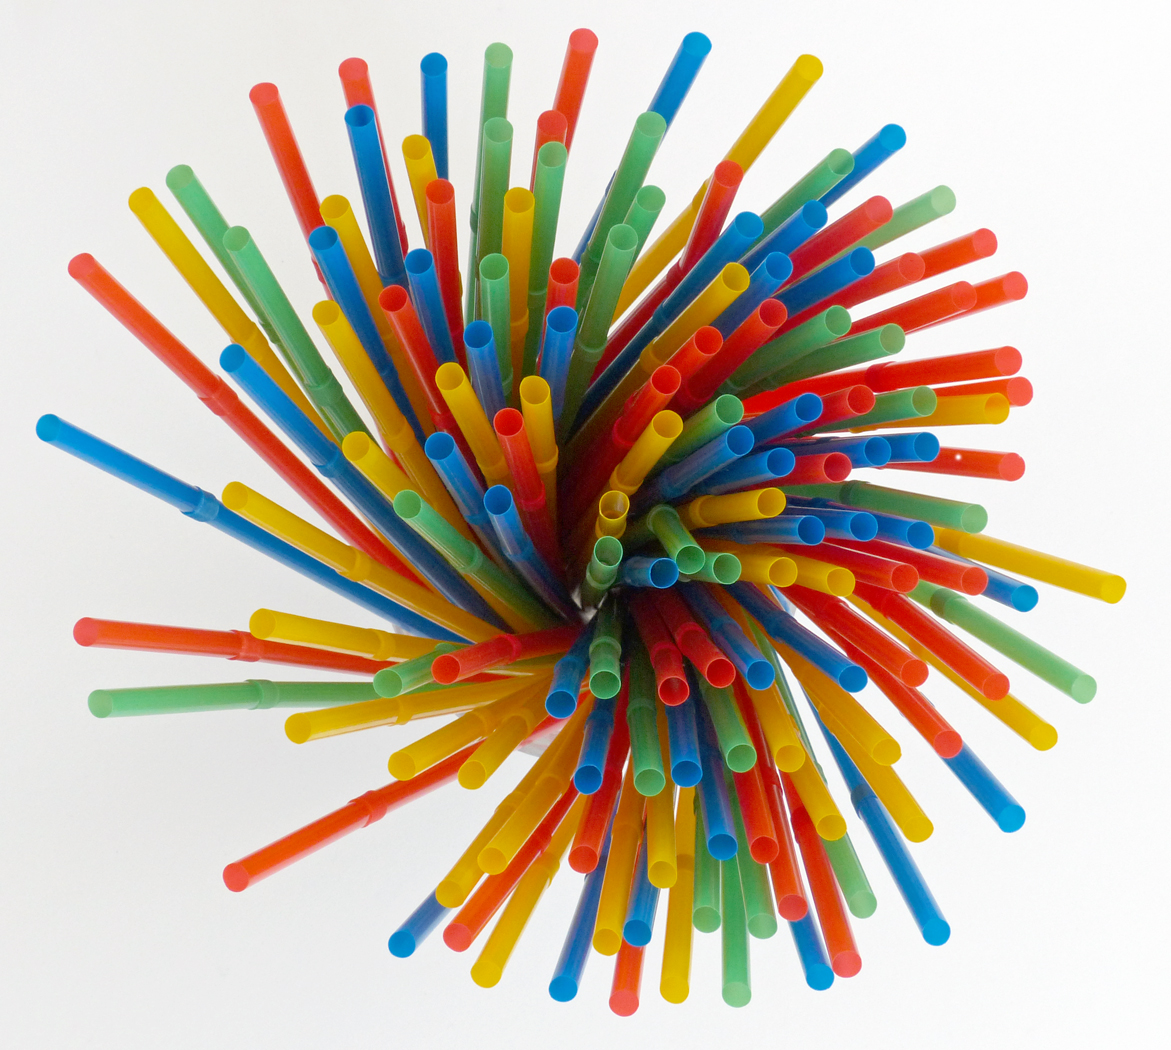 DRINKING STRAWS by Jane Morrish